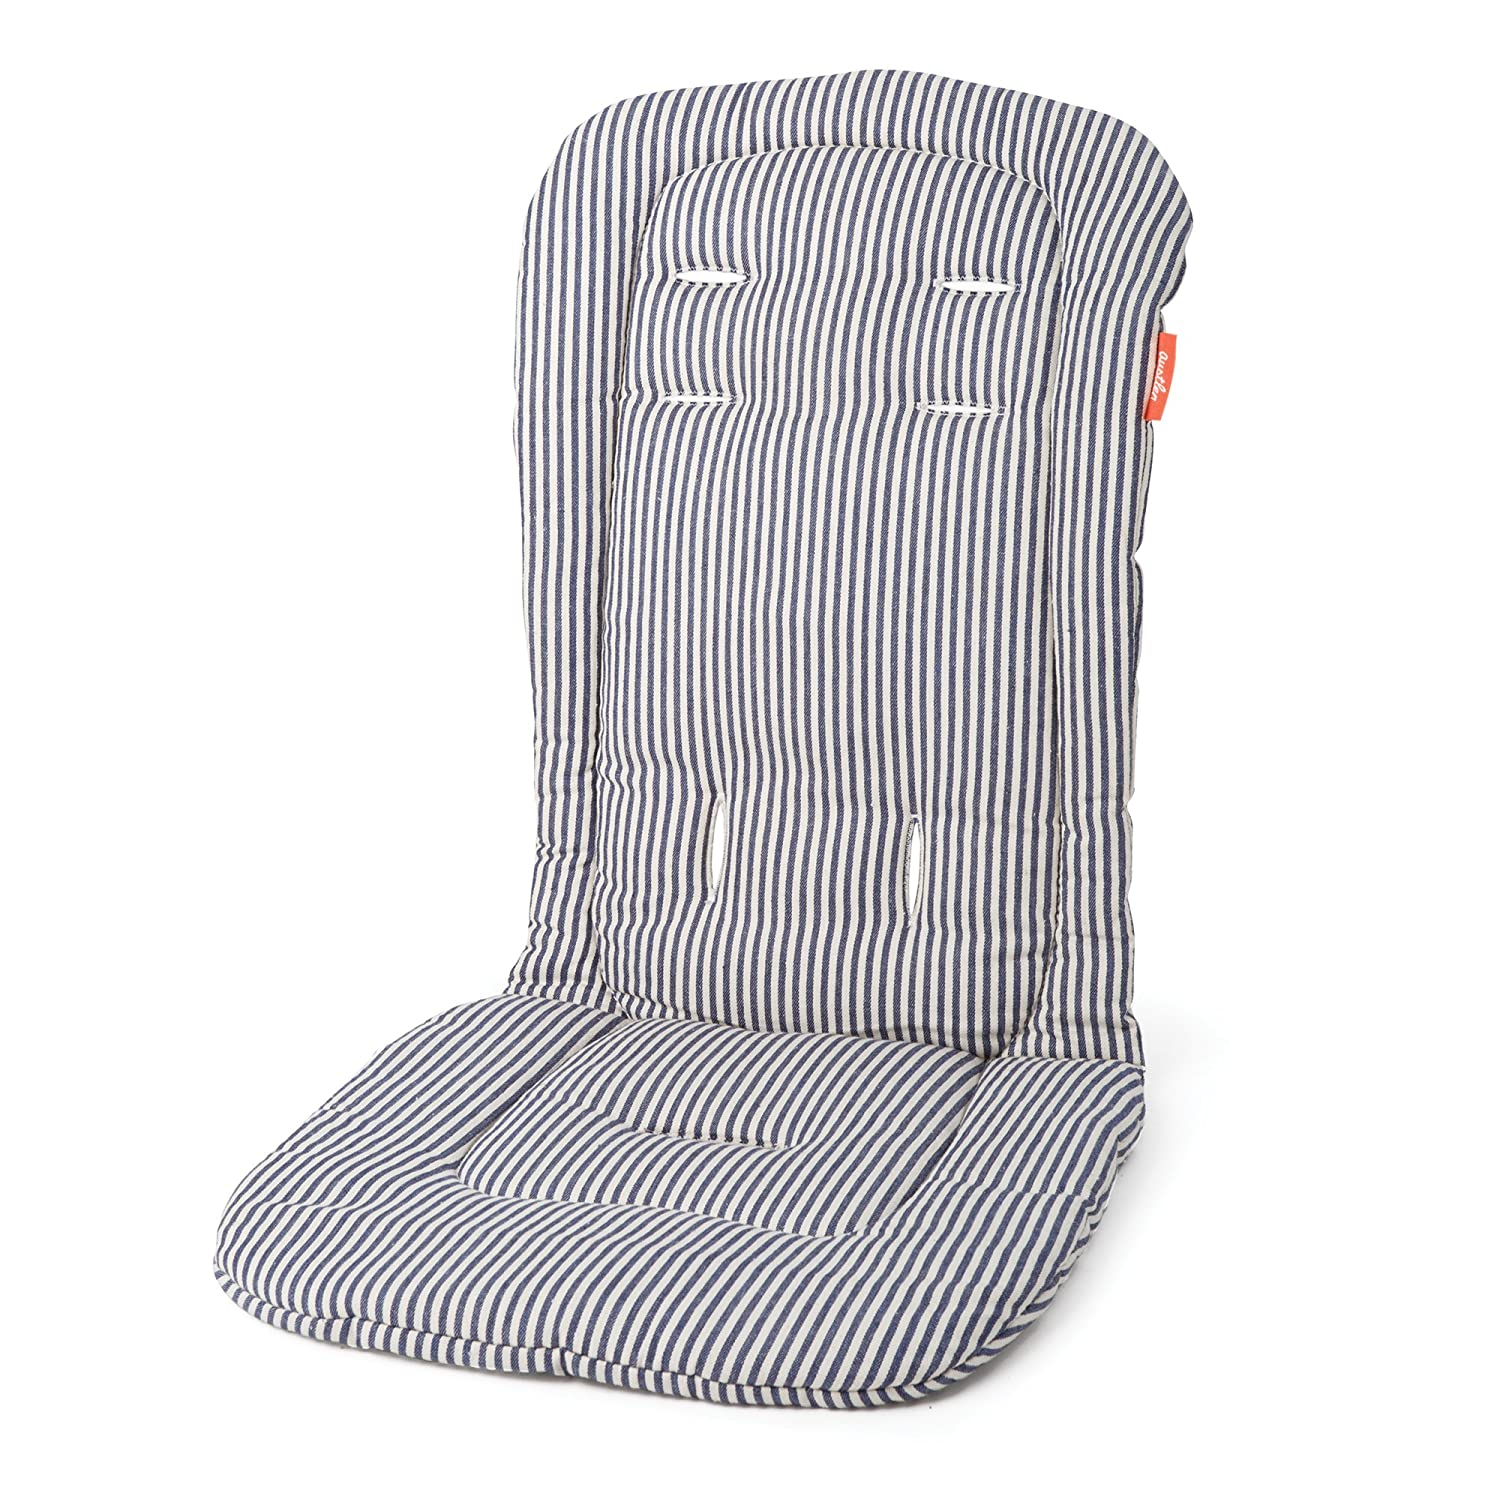 Austlen Baby Co. Entourage Second Seat Liner in Navy (also available in Black) SA-LINS-NV